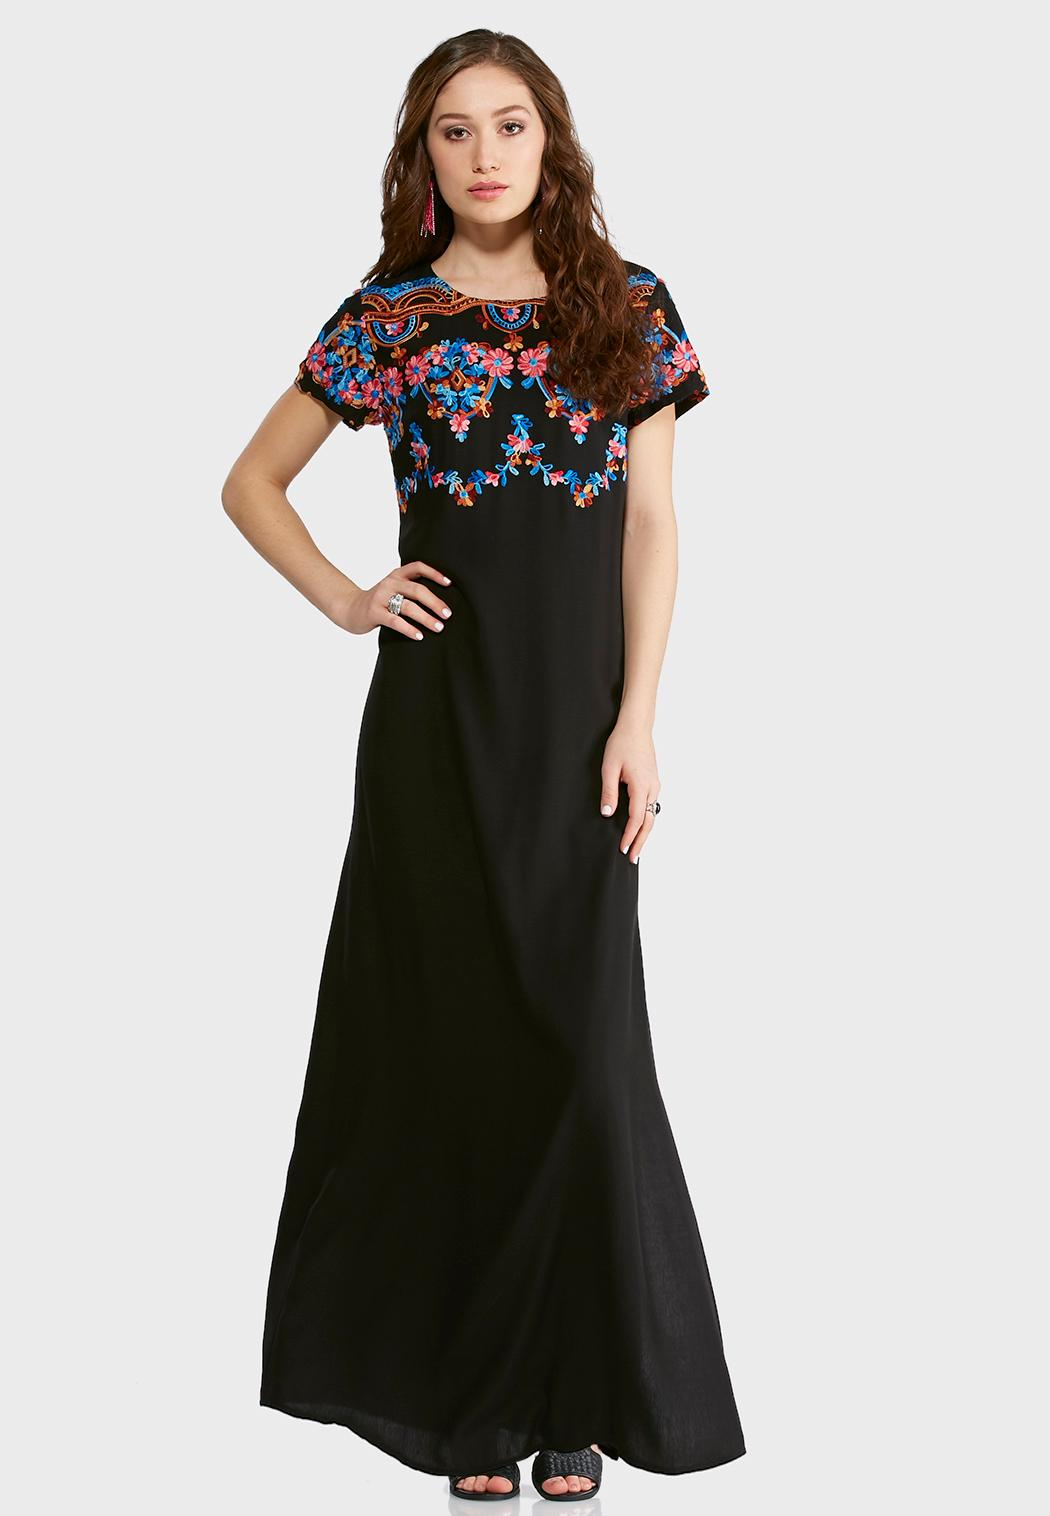 Misses maxi dresses to purchase online